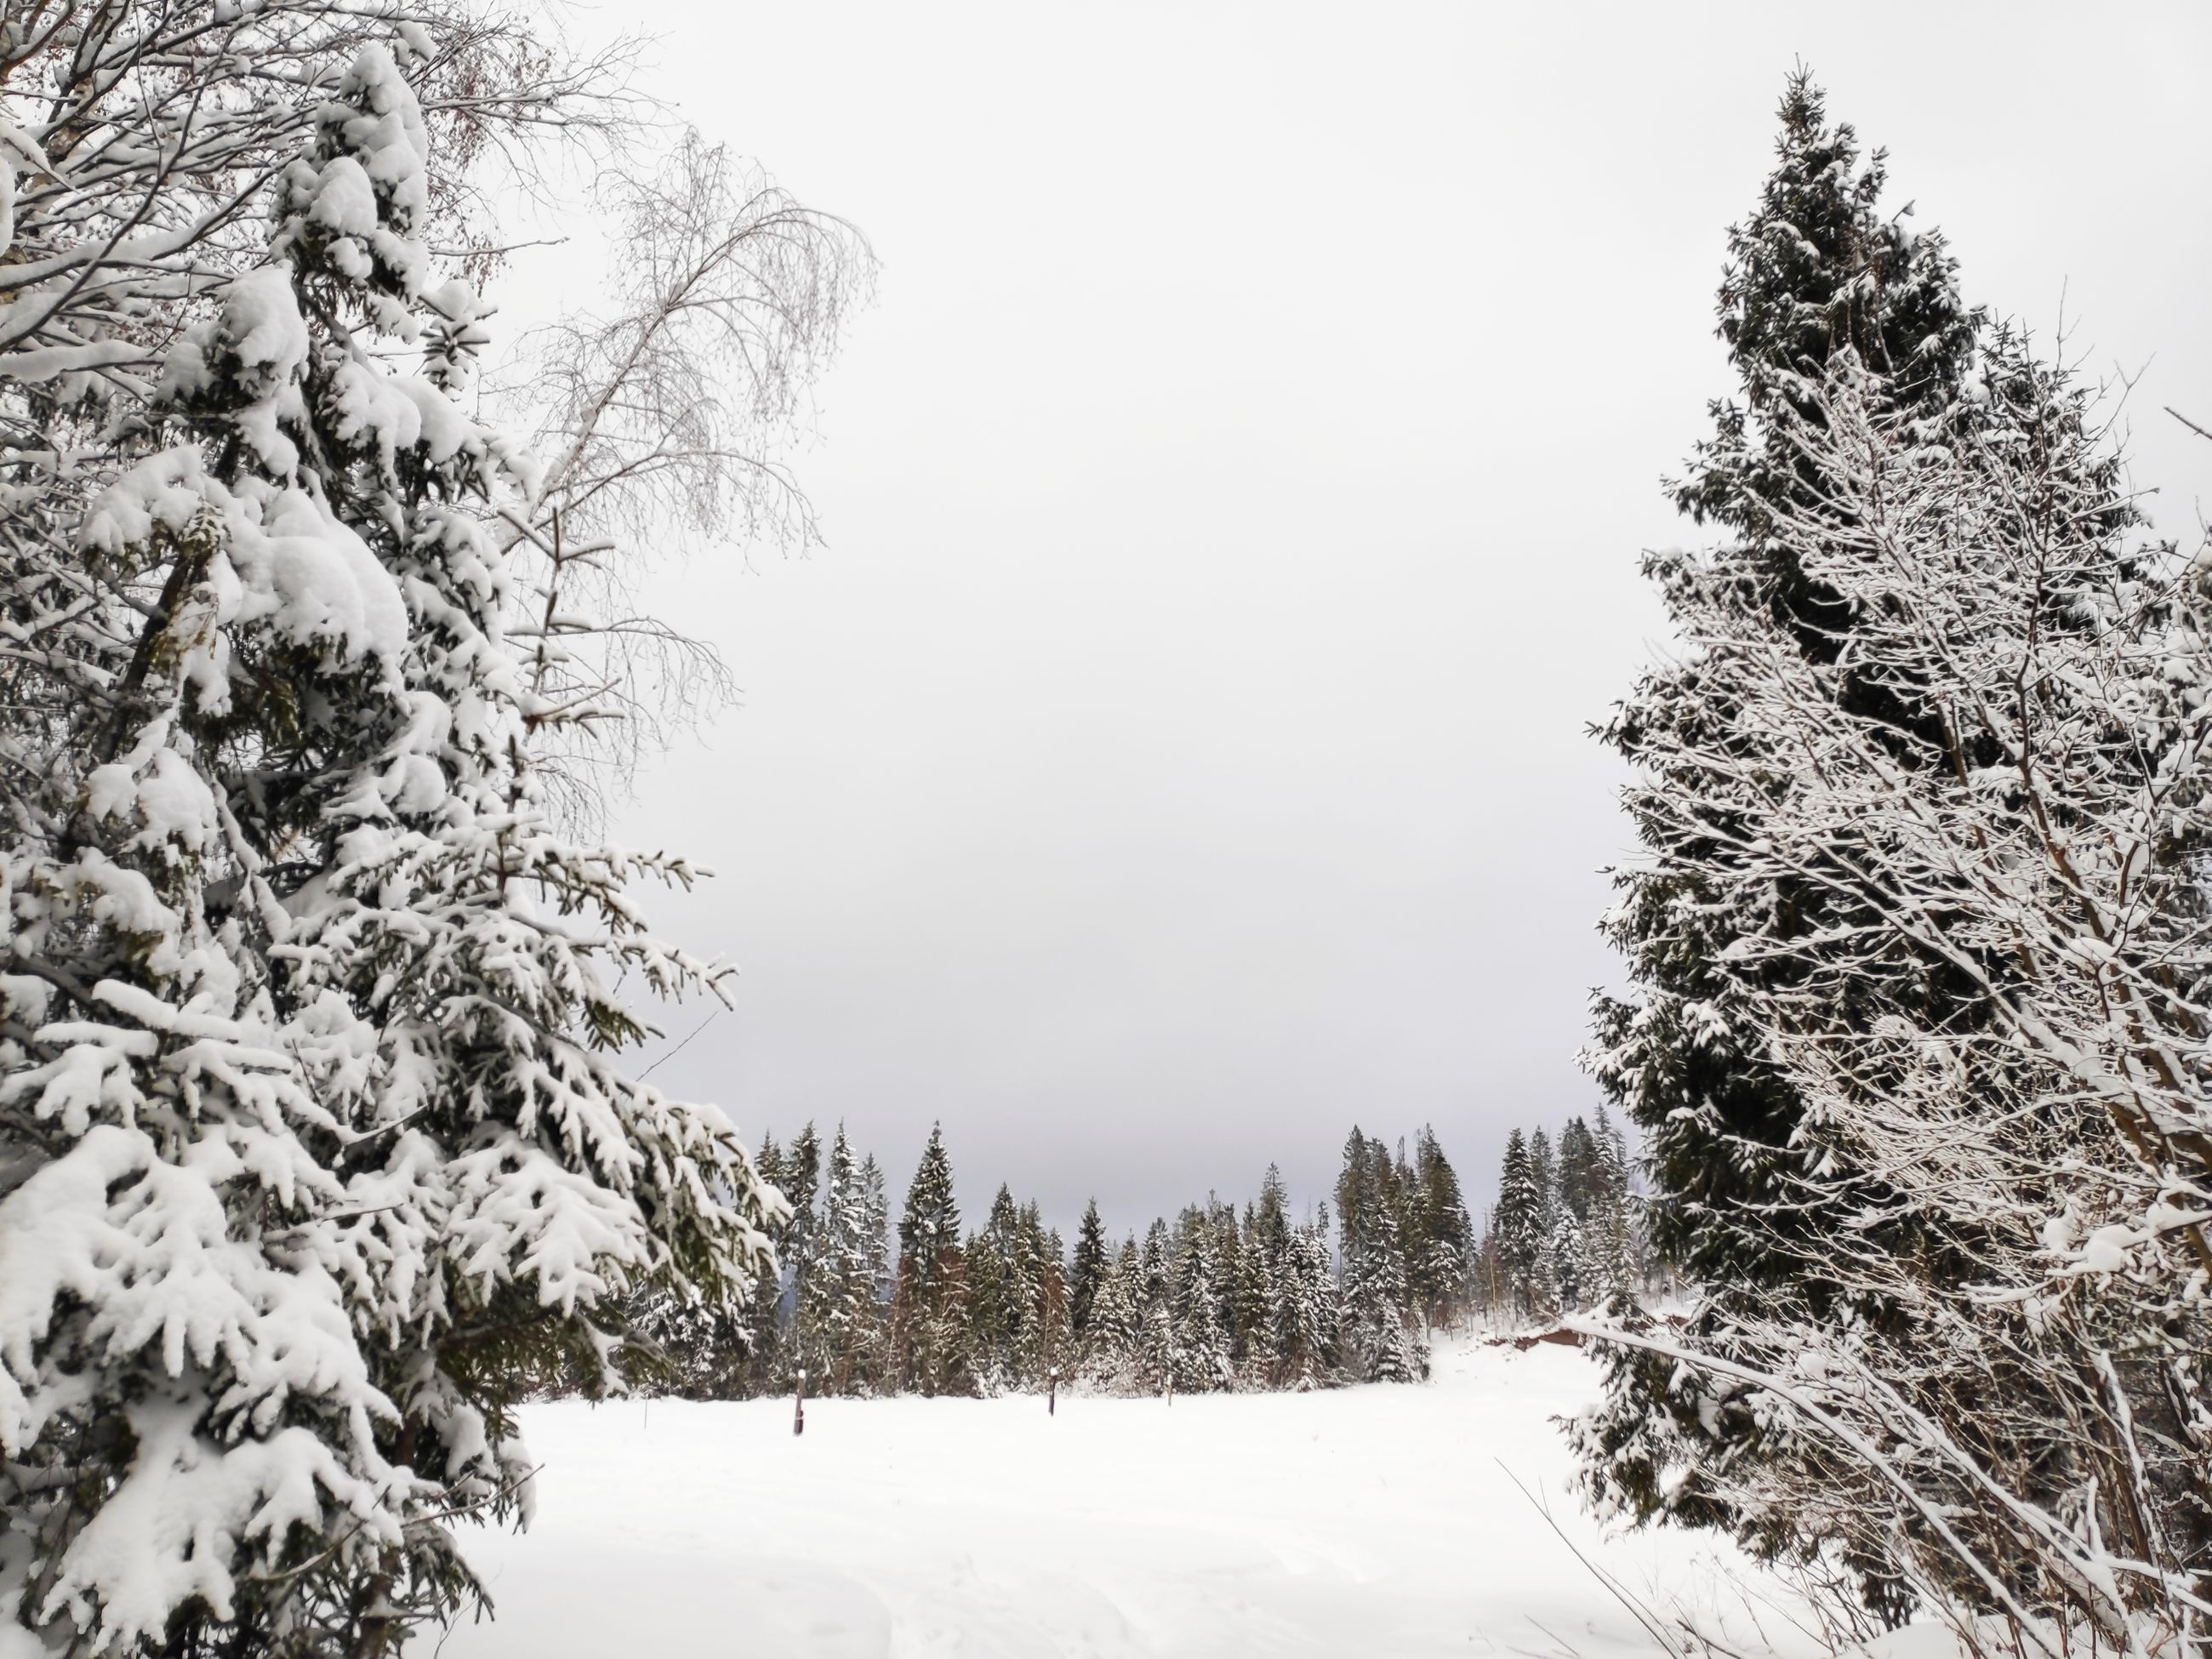 tree, cold temperature, winter, snow, plant, beauty in nature, tranquility, sky, nature, covering, scenics - nature, tranquil scene, no people, growth, day, frozen, land, non-urban scene, branch, outdoors, coniferous tree, snowcapped mountain, snowing